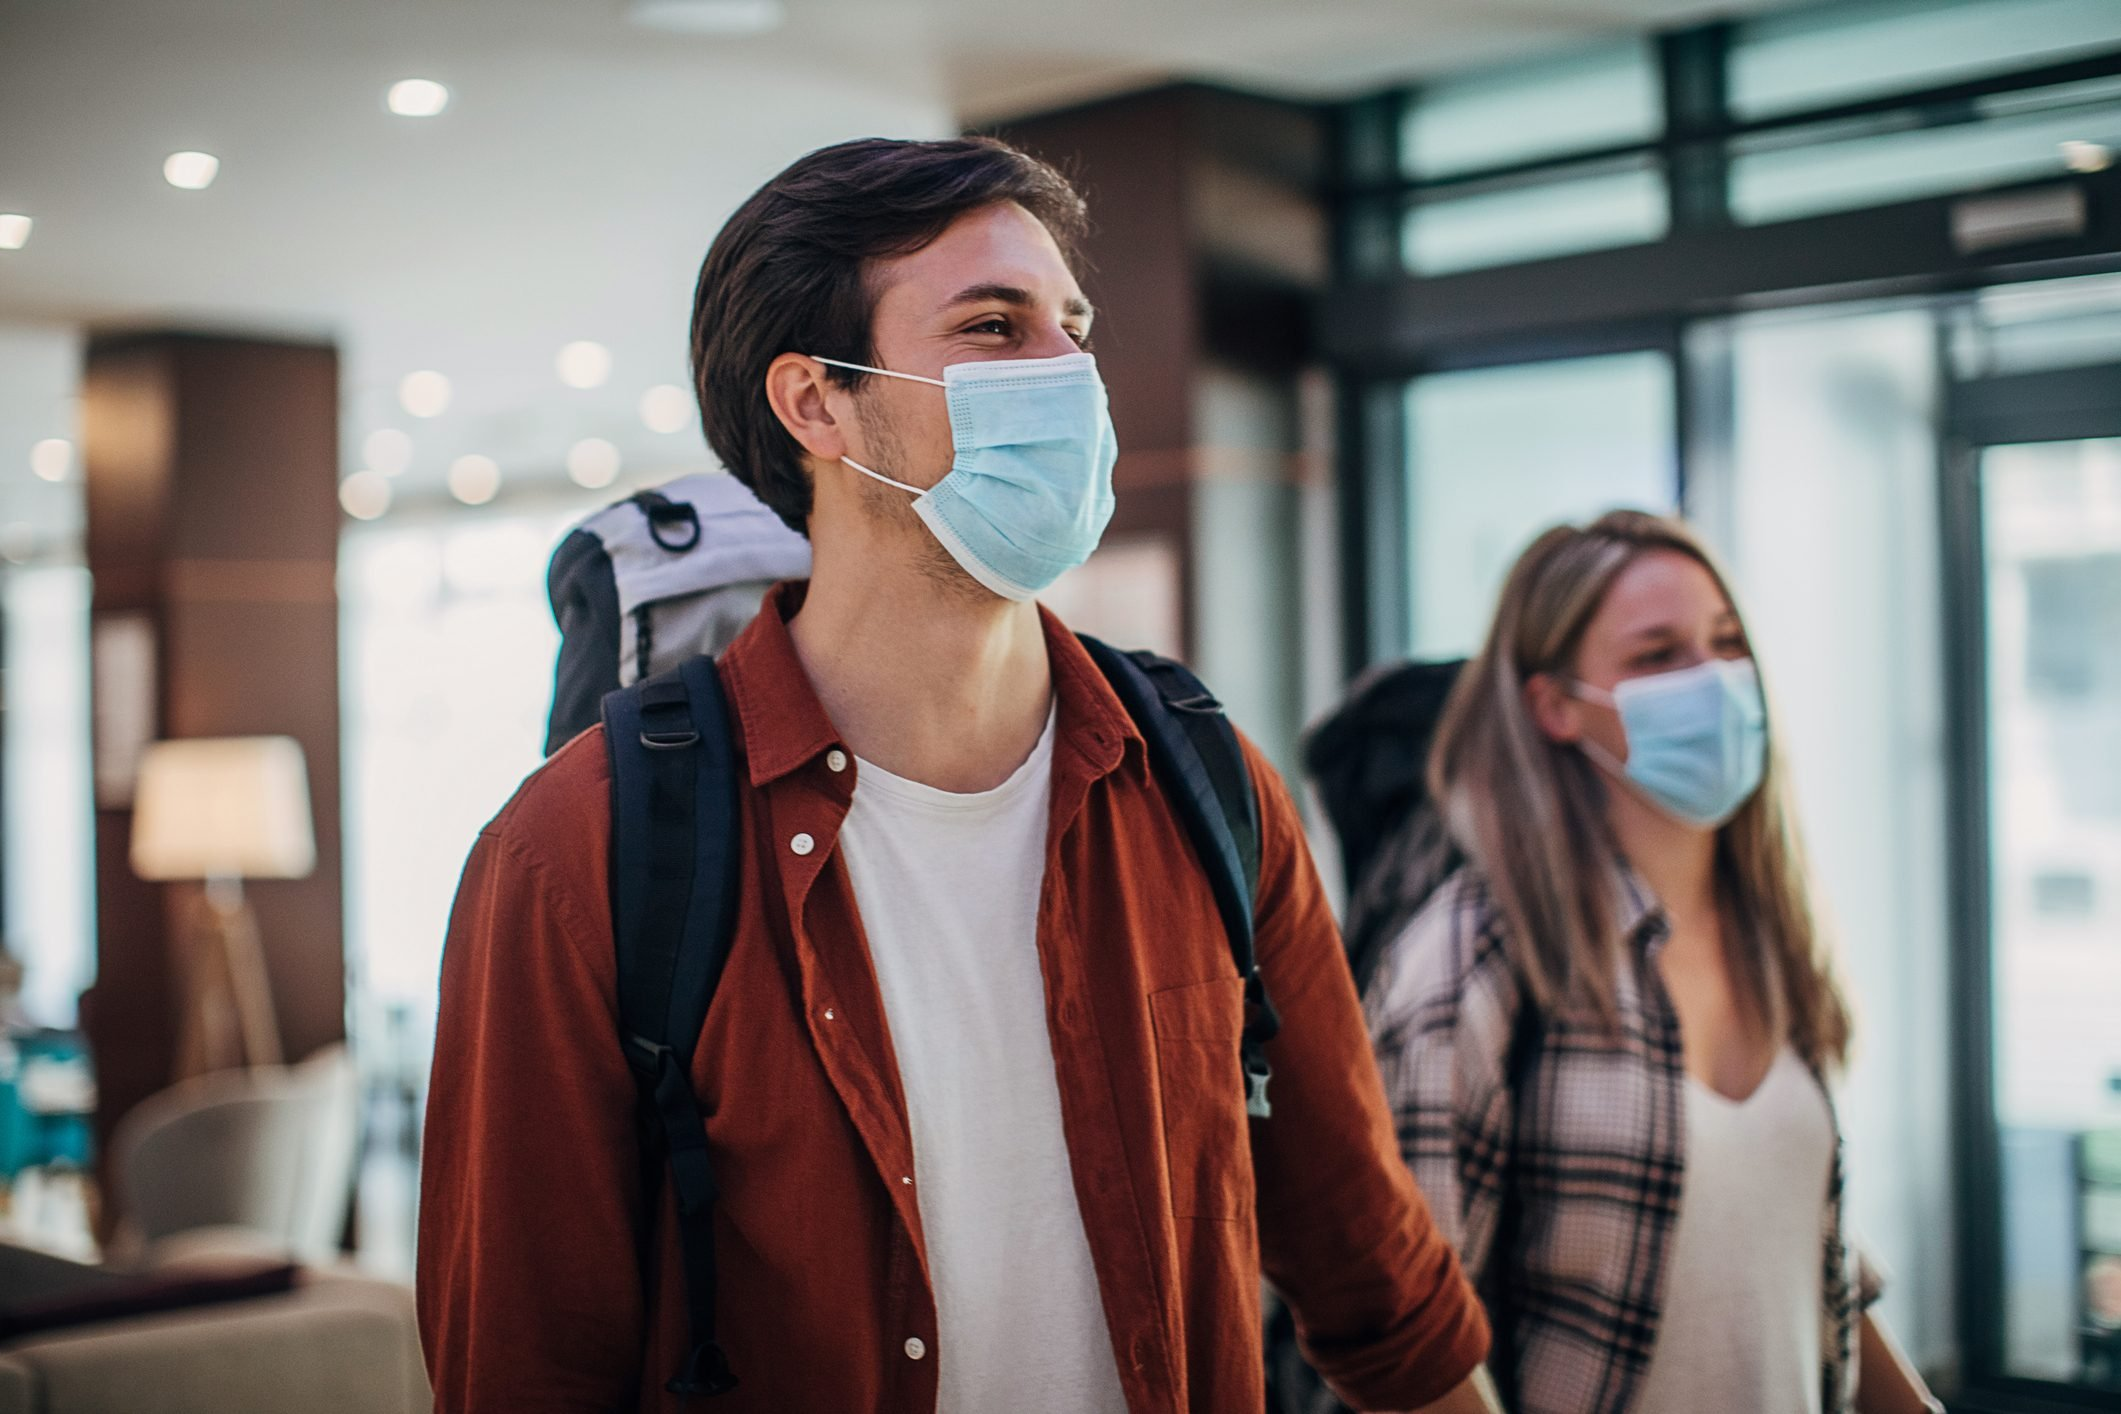 Couple travelers with medical masks just arrived in hotel